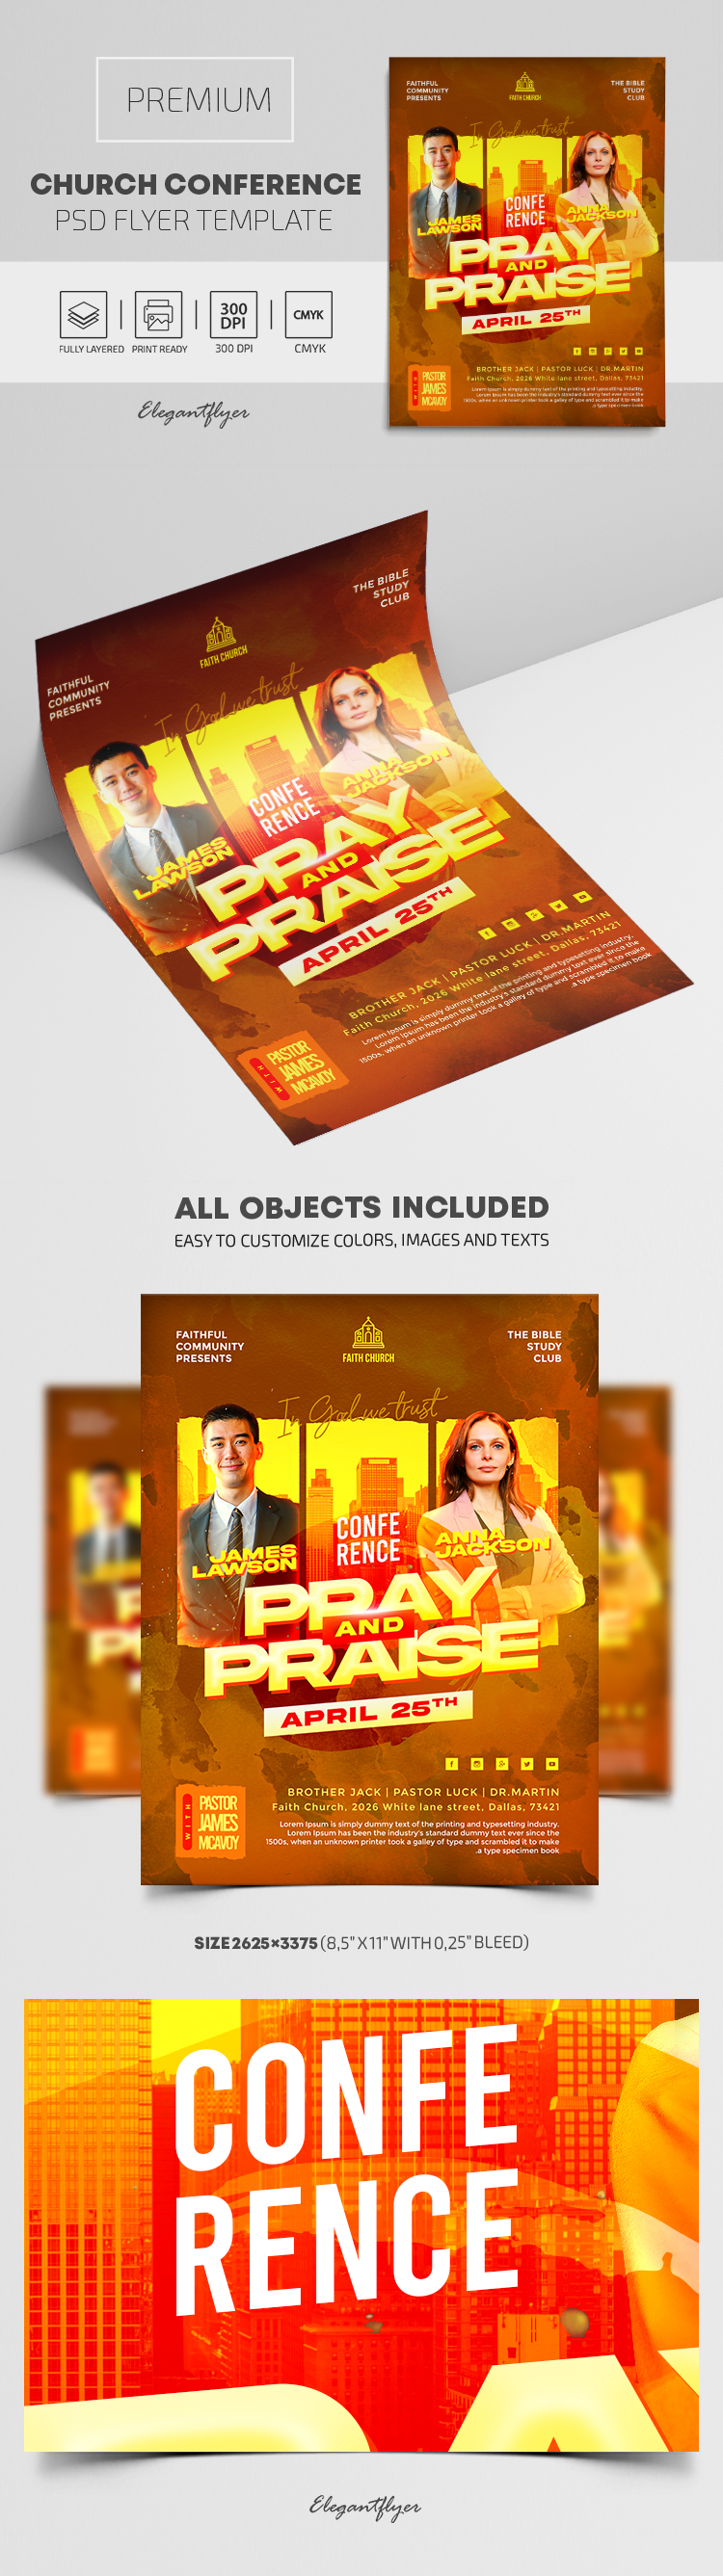 Church Conference – Premium PSD Flyer Template